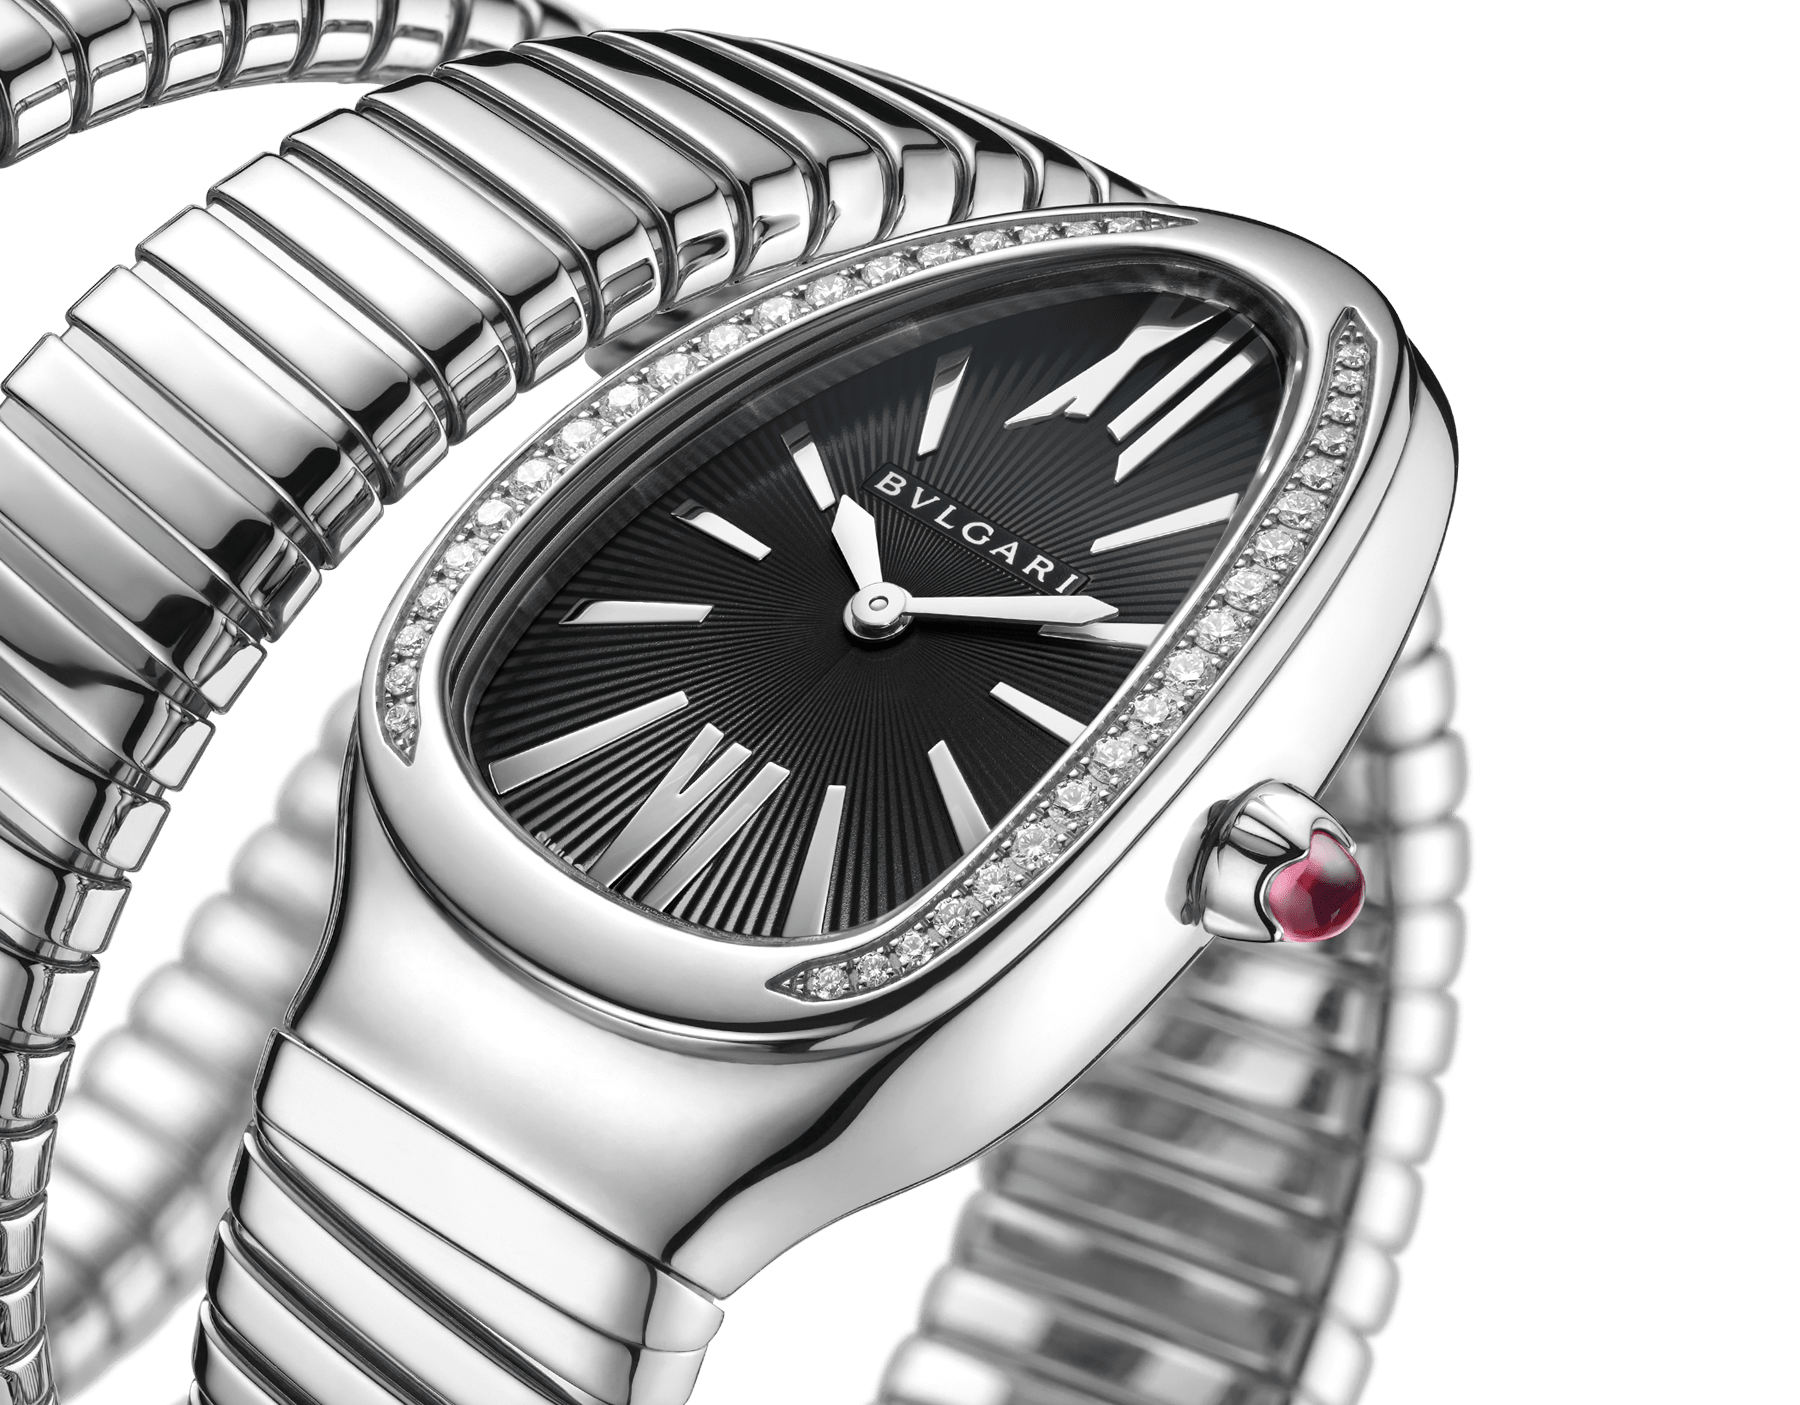 Serpenti Tubogas double spiral watch with stainless steel case and bracelet, bezel set with brilliant-cut diamonds and black dial with guilloché soleil treatment. Water-resistant up to 30 meters. Large size 103433 image 2